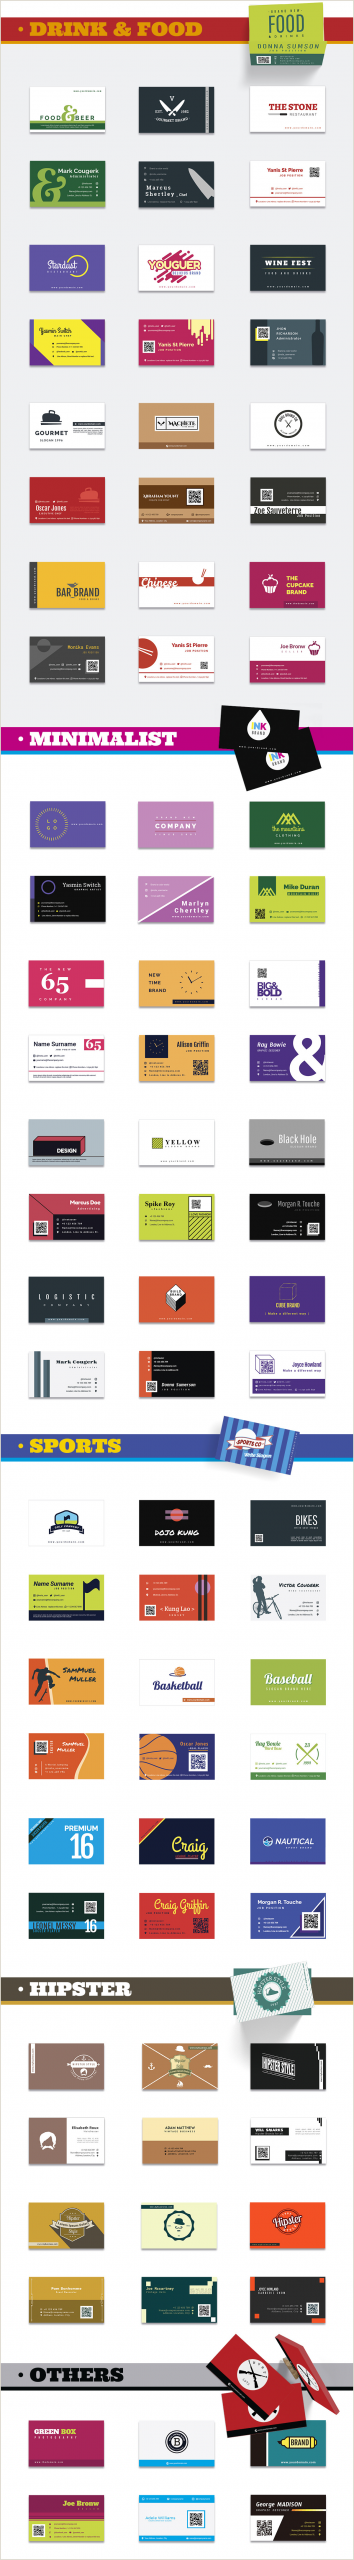 Unique Business Card Template 1000 Business Card Templates Pack Designshock Shockfamily